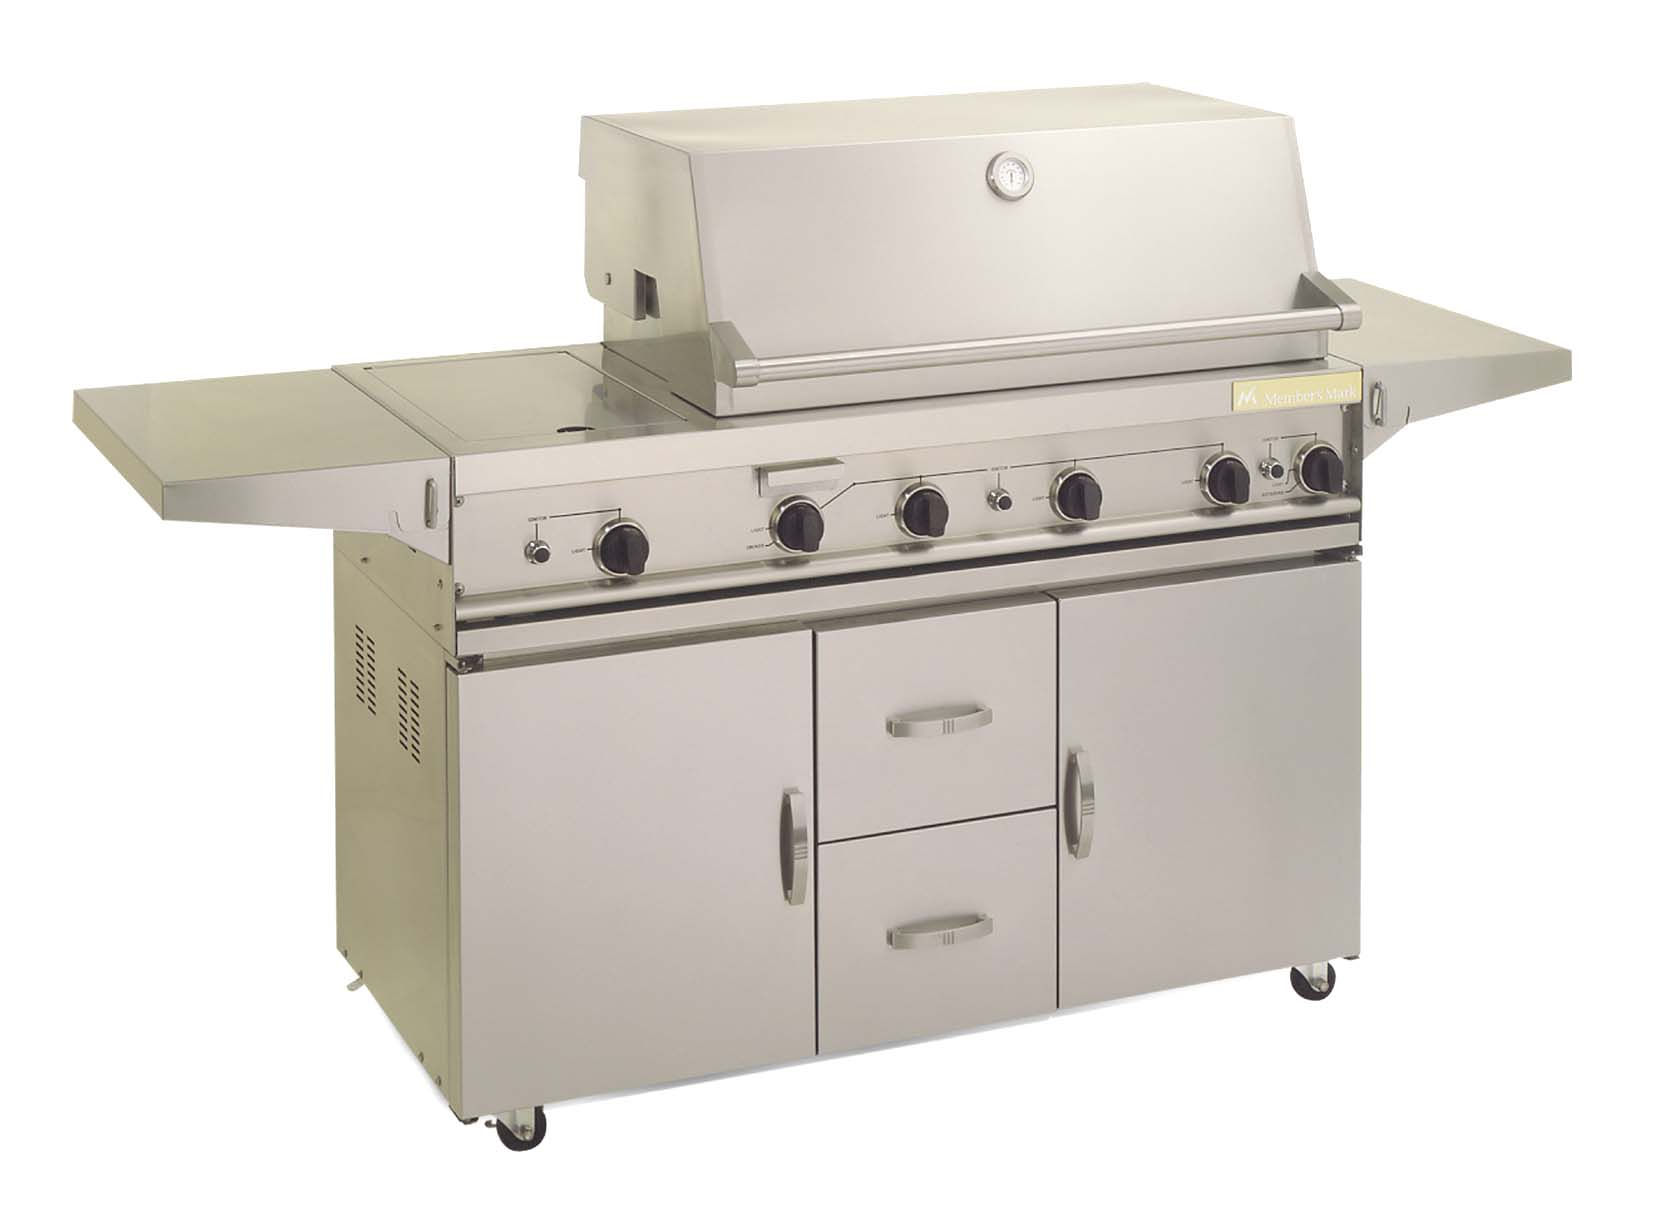 Cpsc Grand Hall Announce Recall Of Gas Grills To Repair